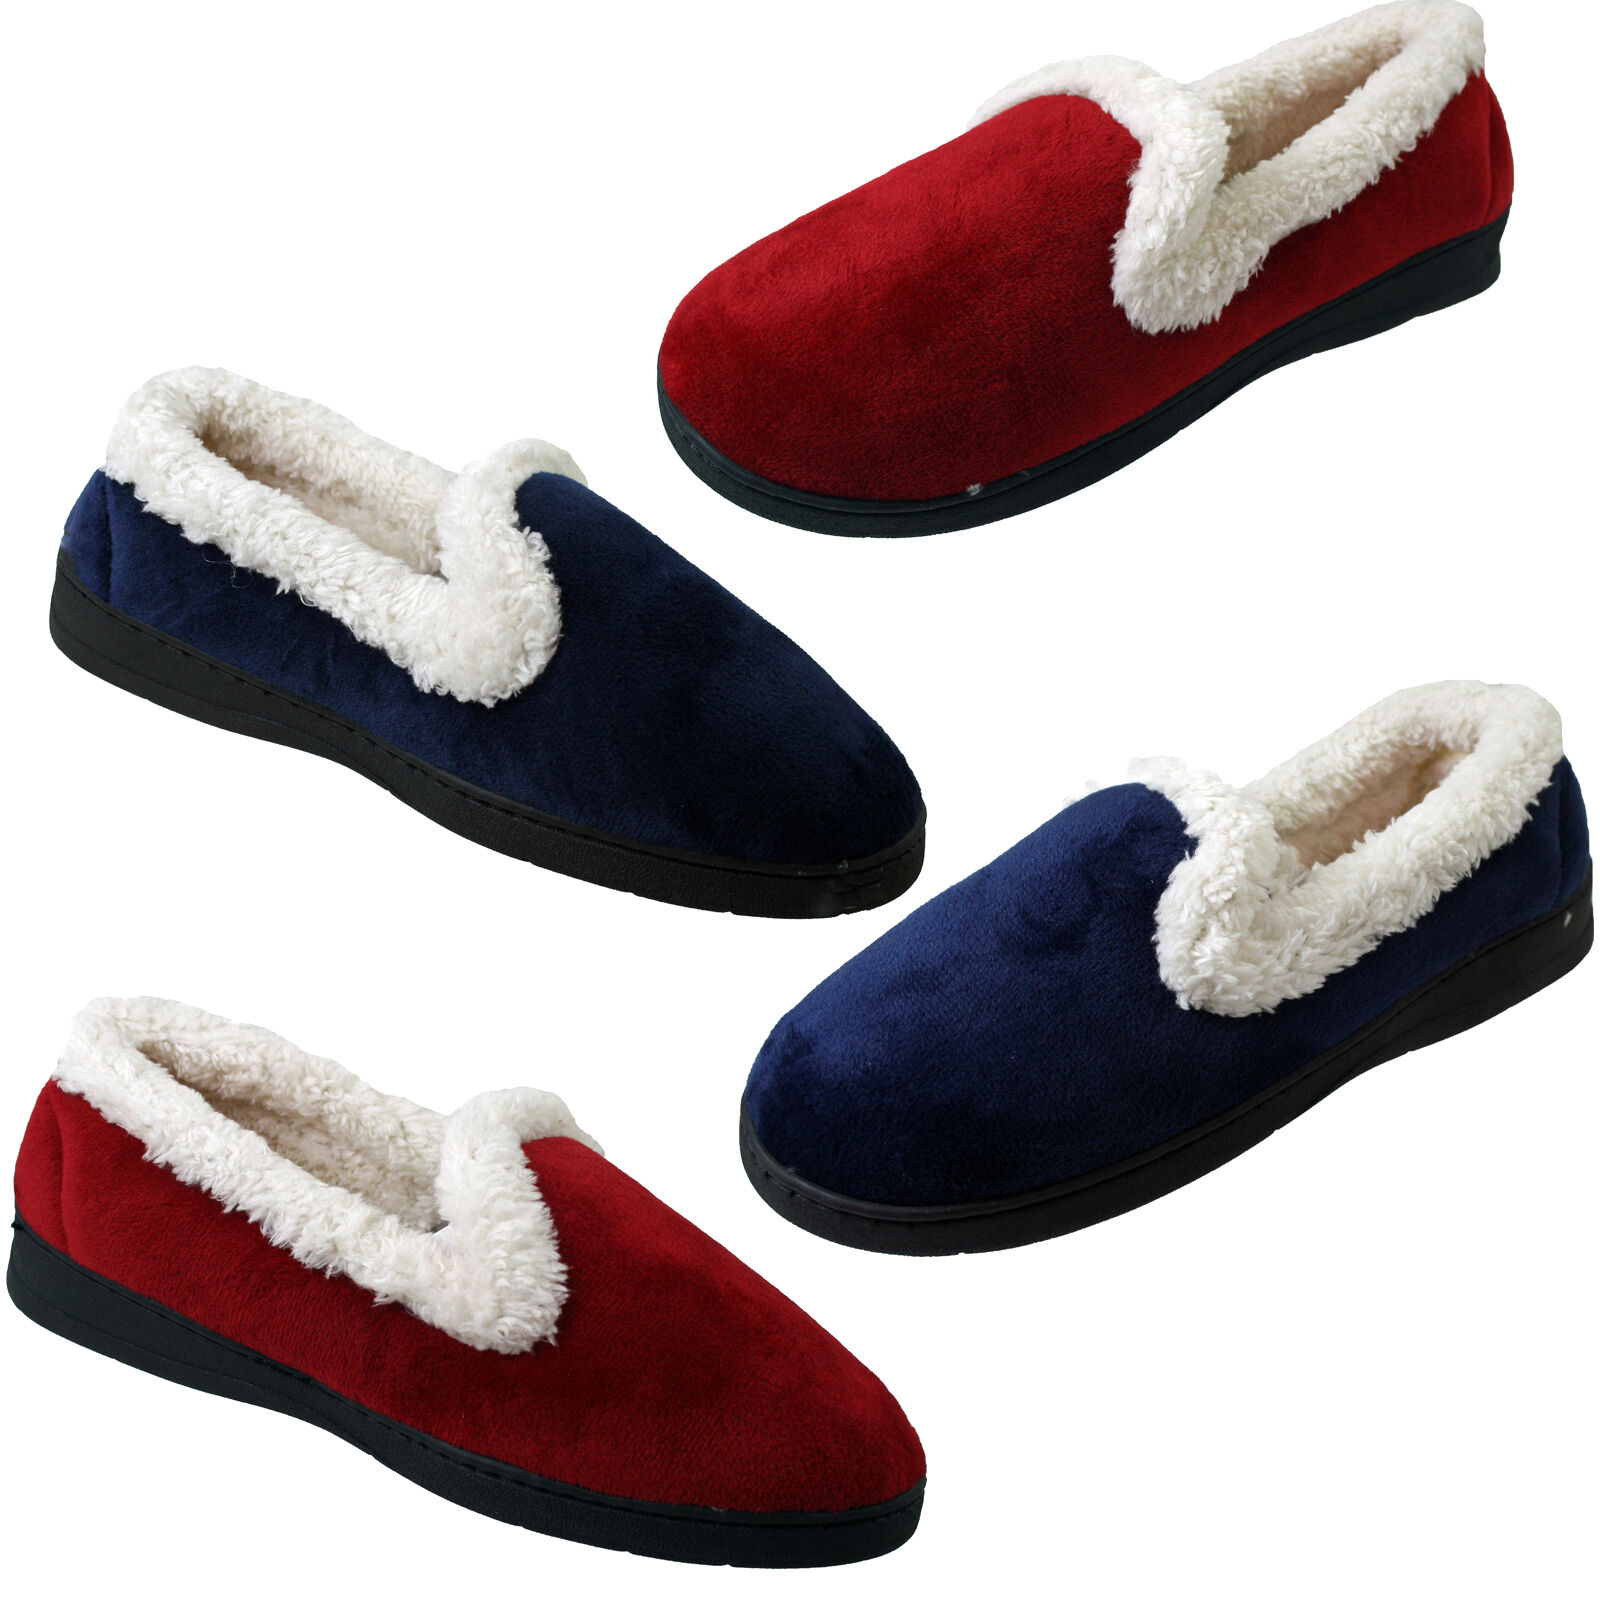 Ladies Full Fur Collared Shoes Womens Warm Slip-on Memory Foam Slippers Size